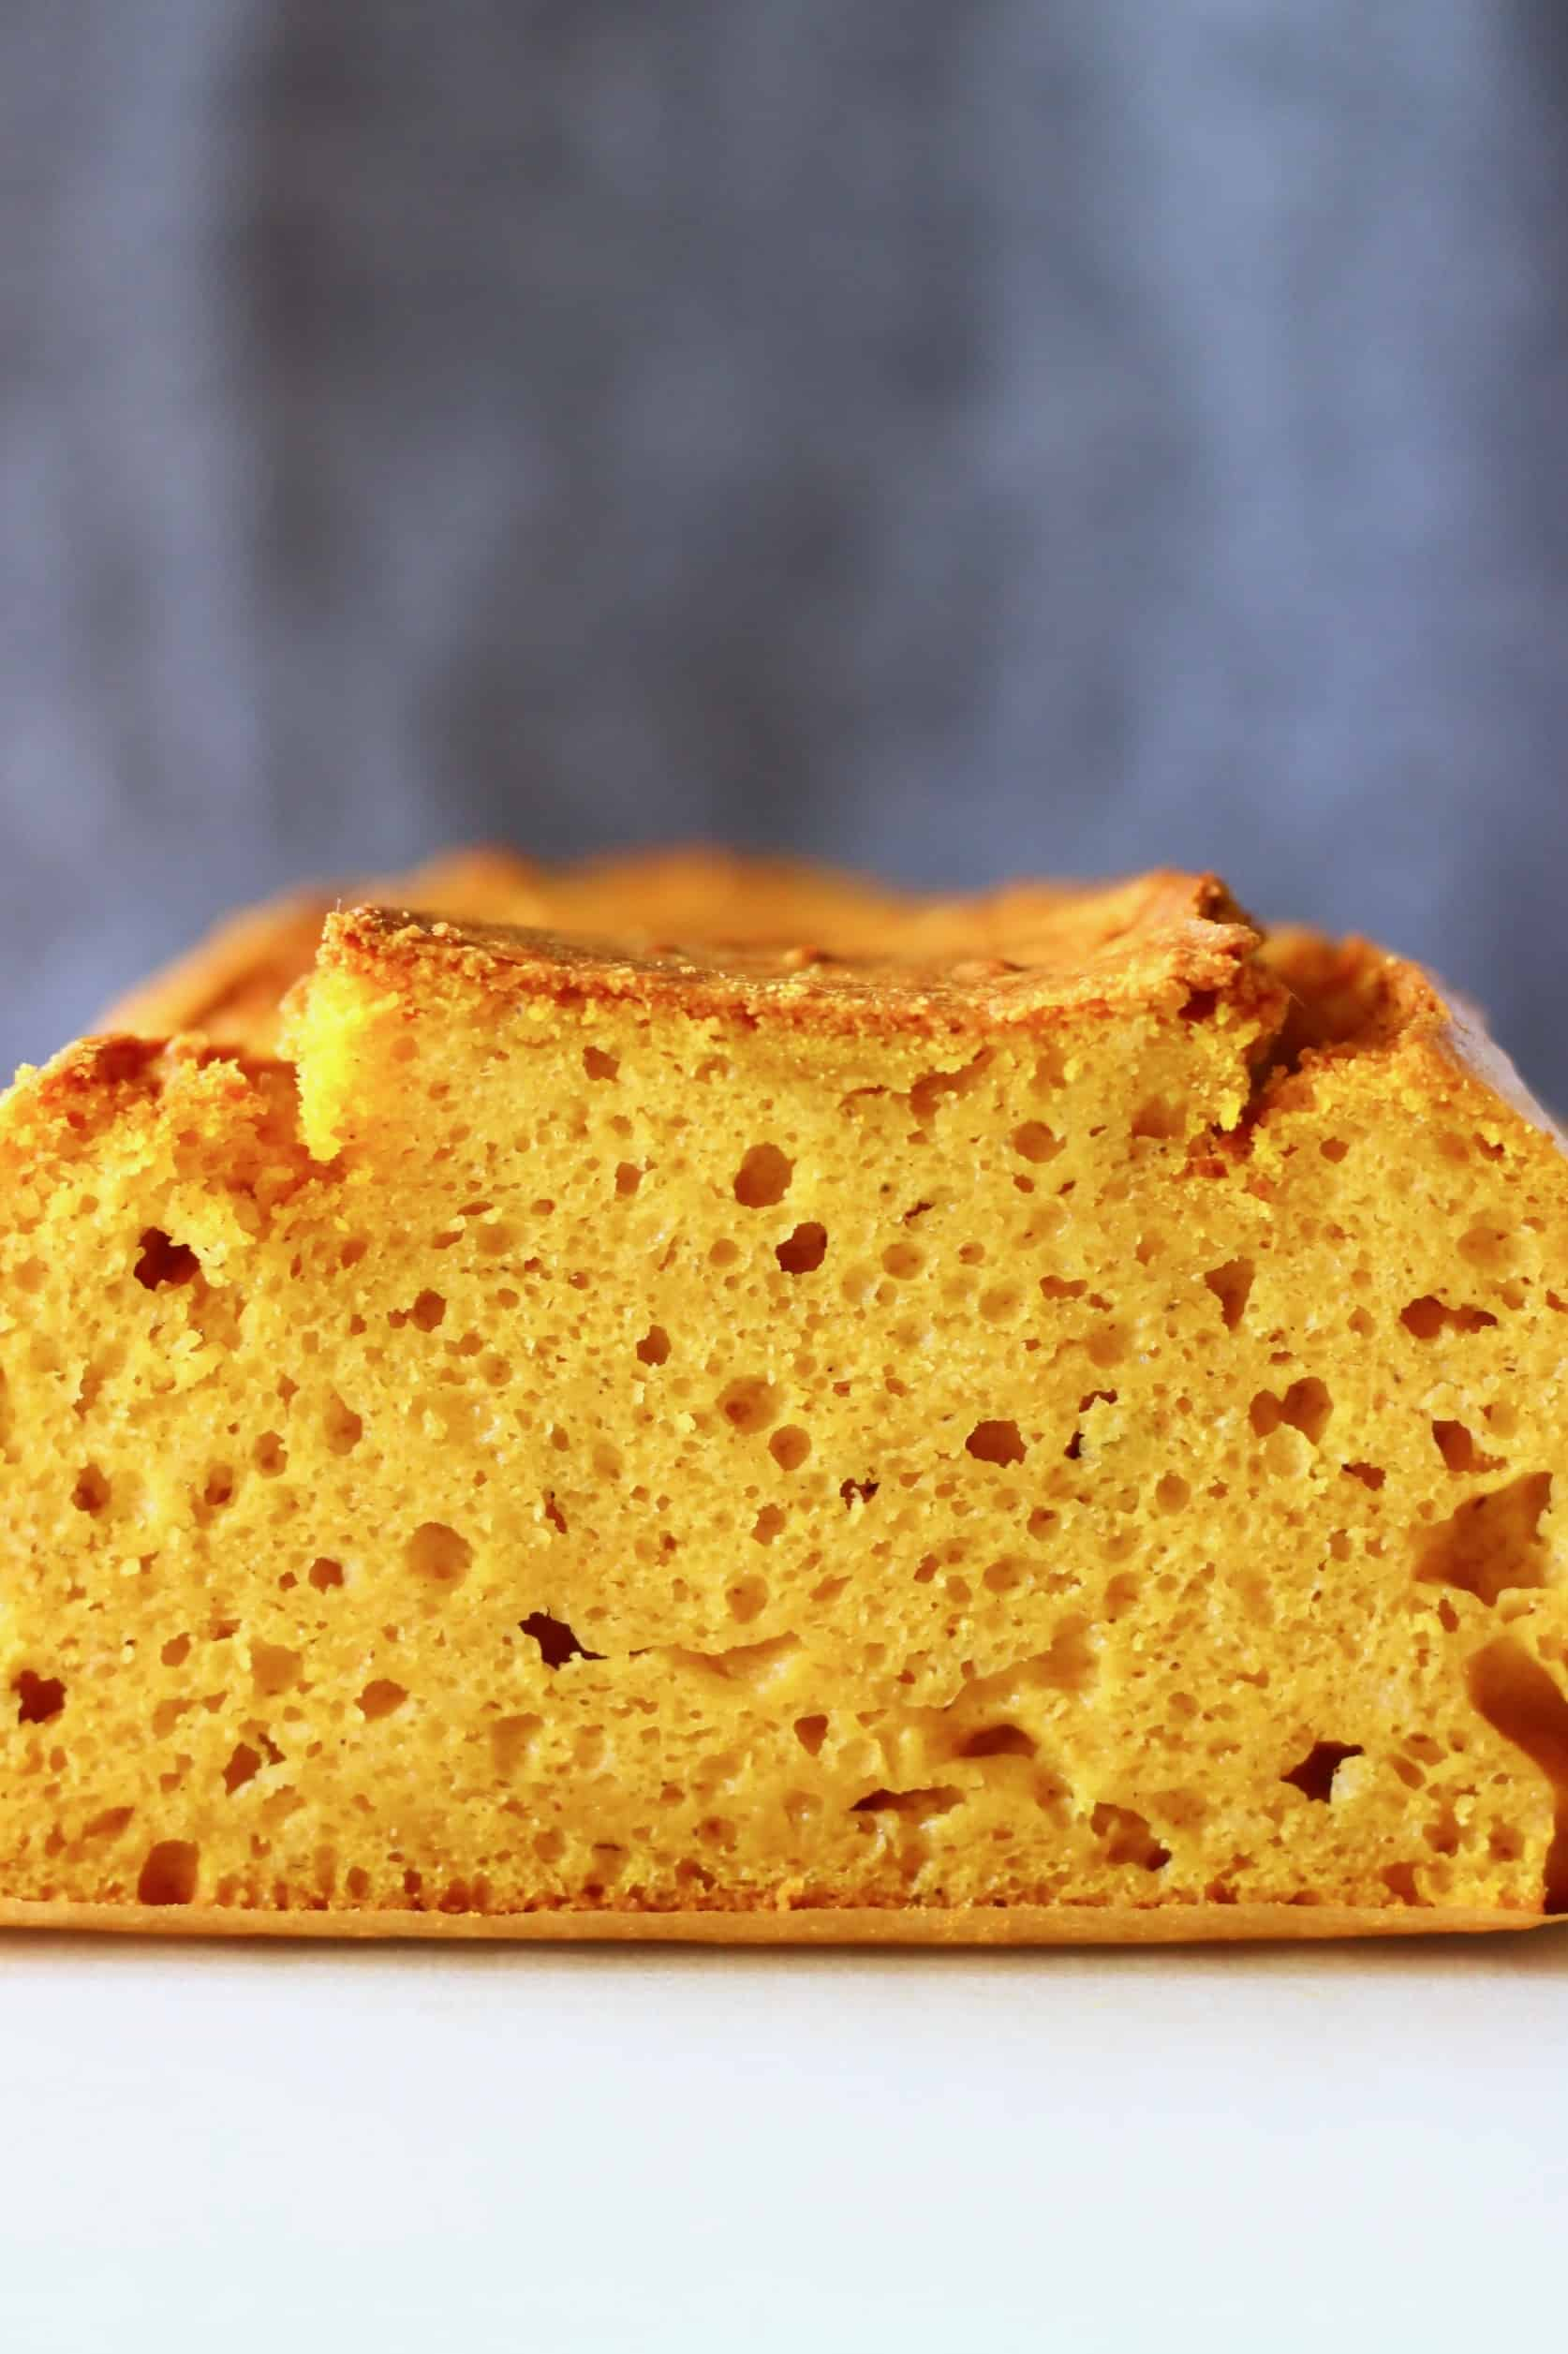 A loaf of pumpkin bread against a grey background